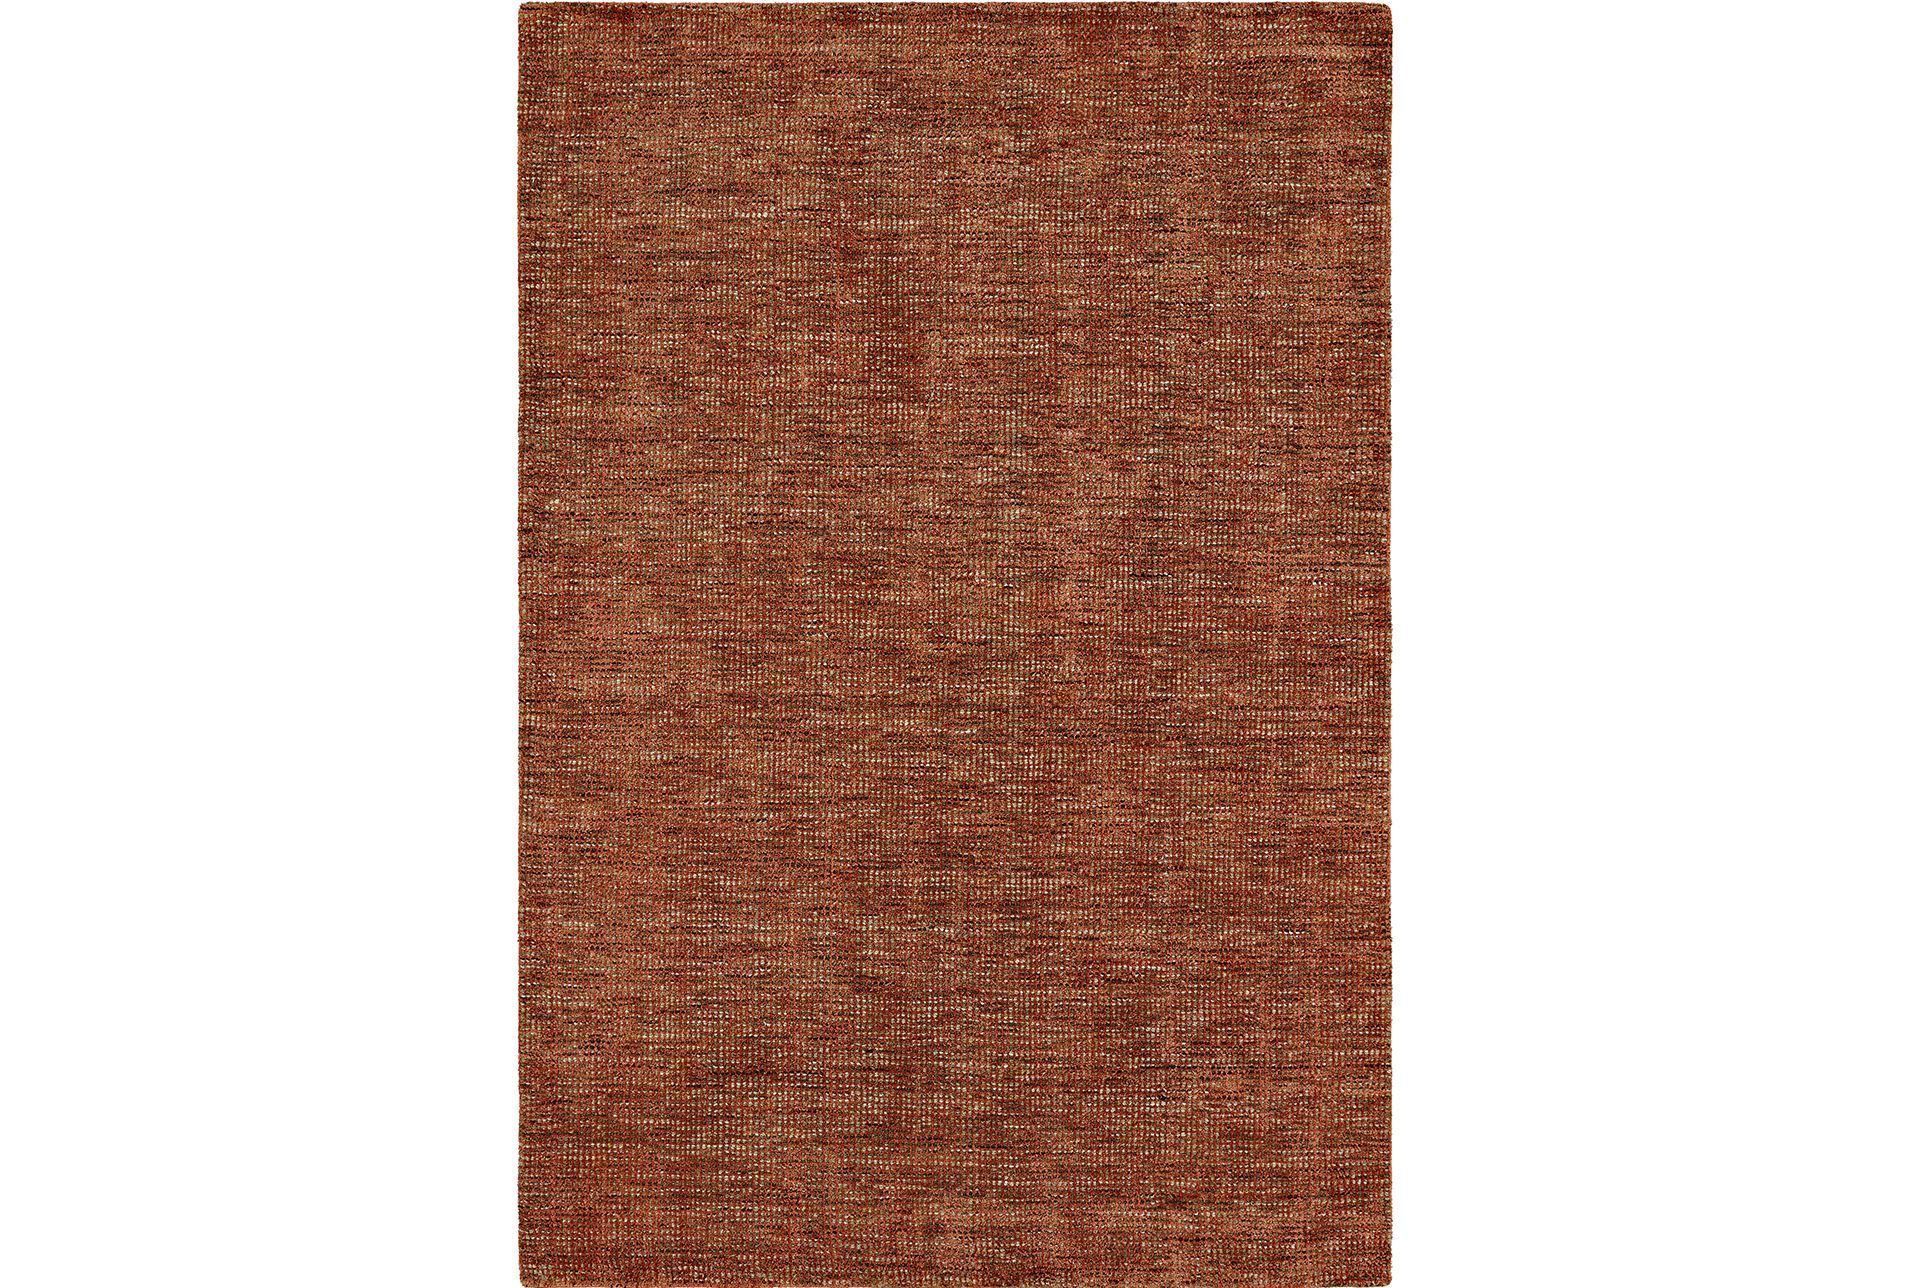 96x120 rug sonata paprika living spaces for Living spaces rugs